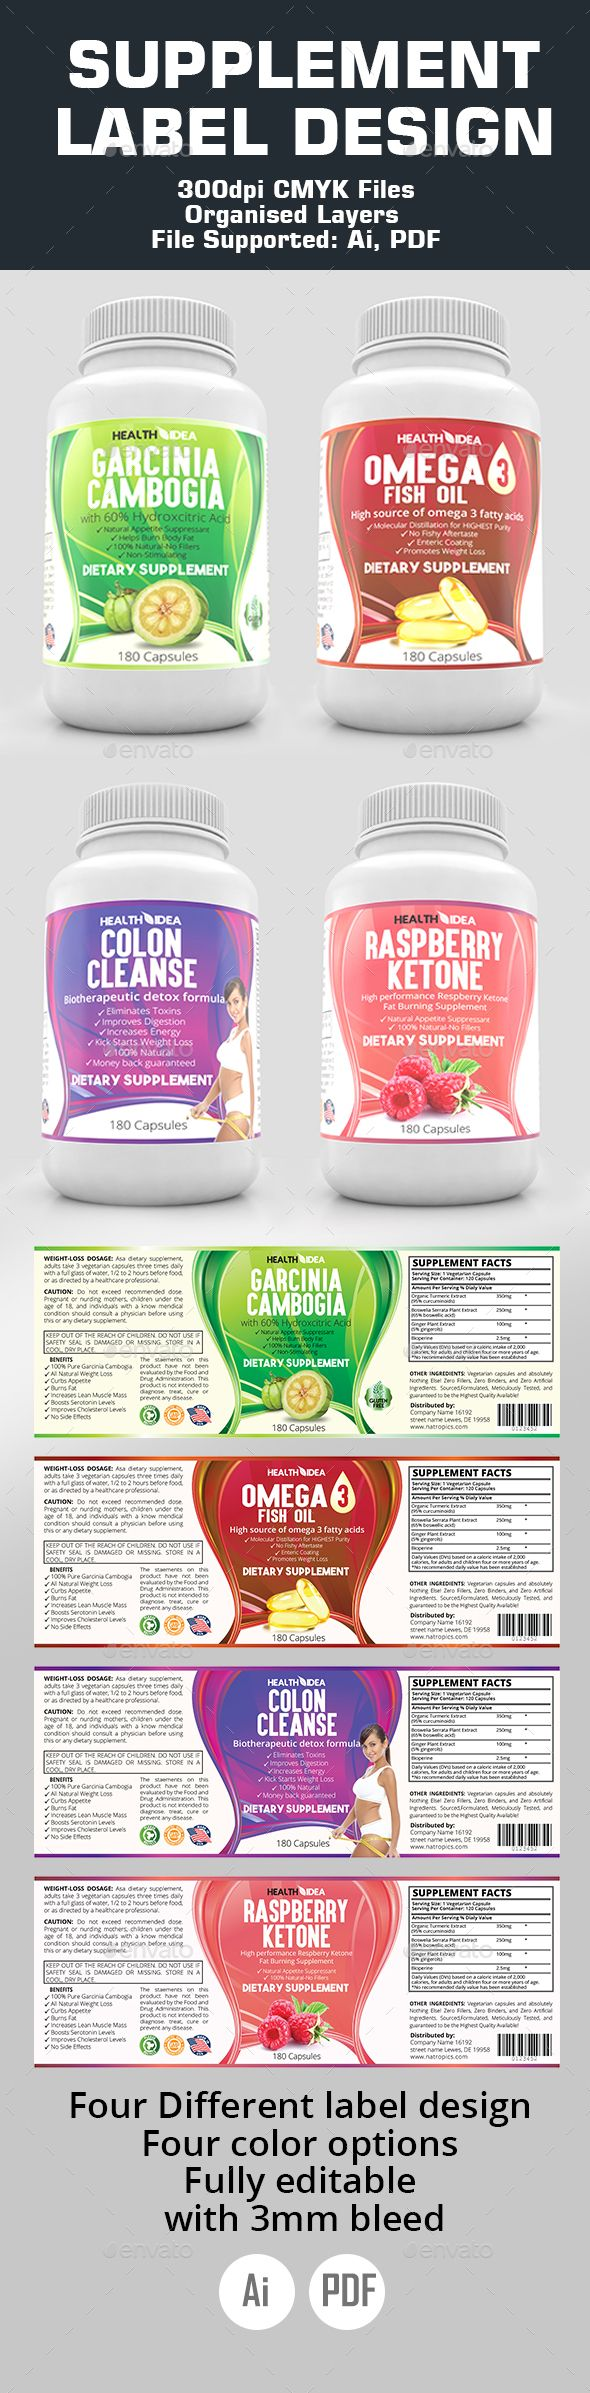 Supplement Label Templates | Ideas para negocios, Etiquetas y Envases